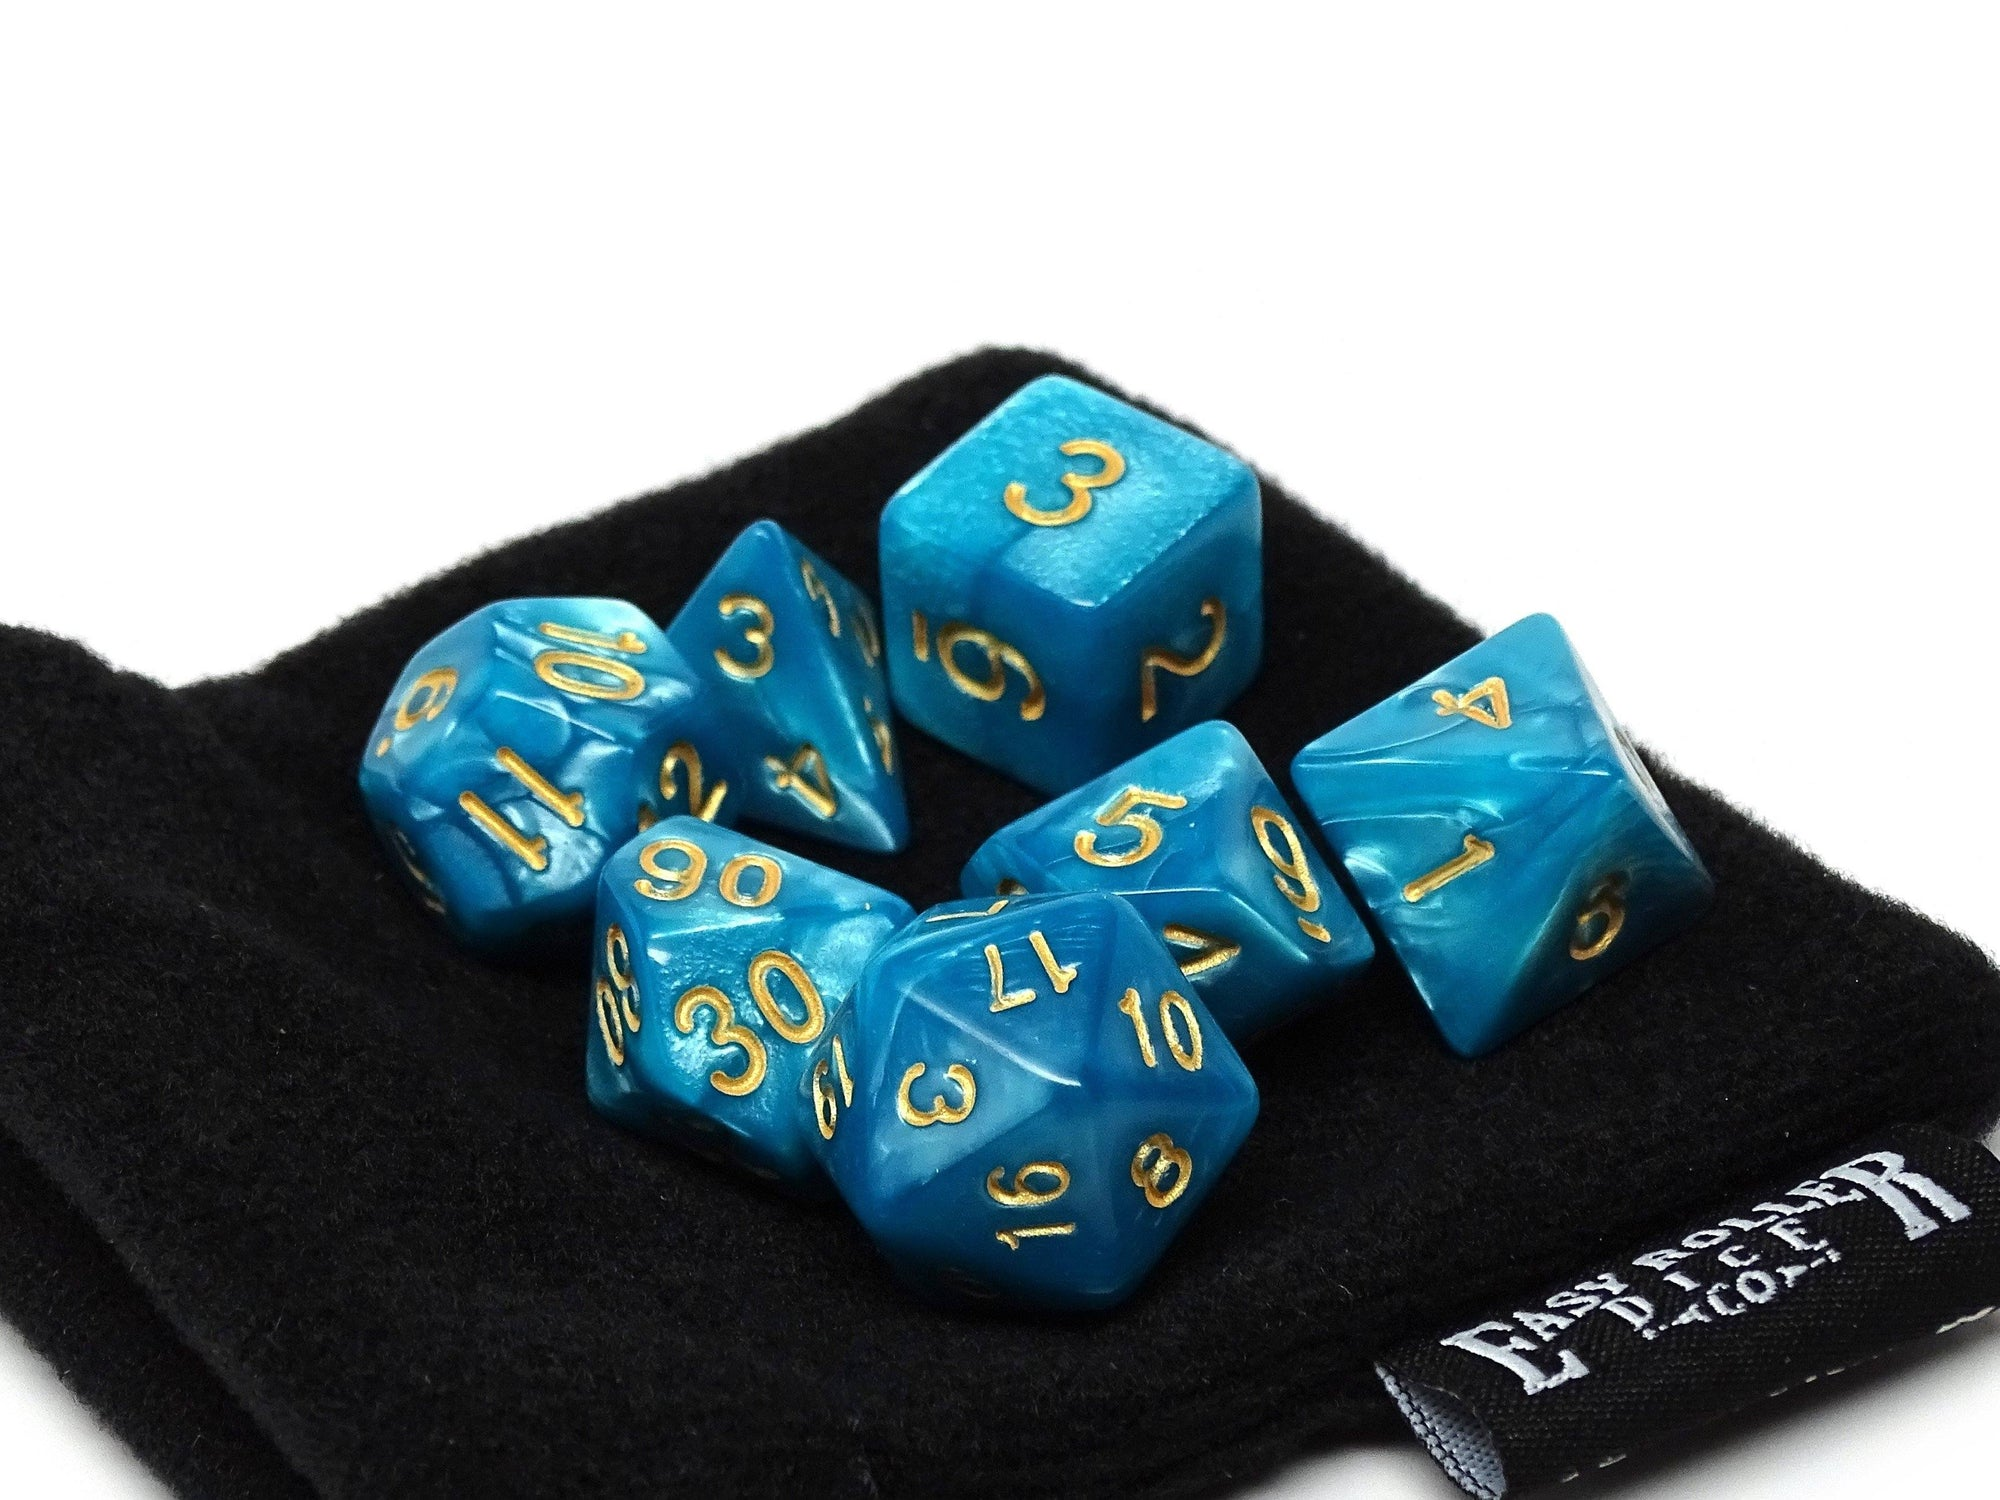 Cyan Marble Dice Collection - 7 Piece Set